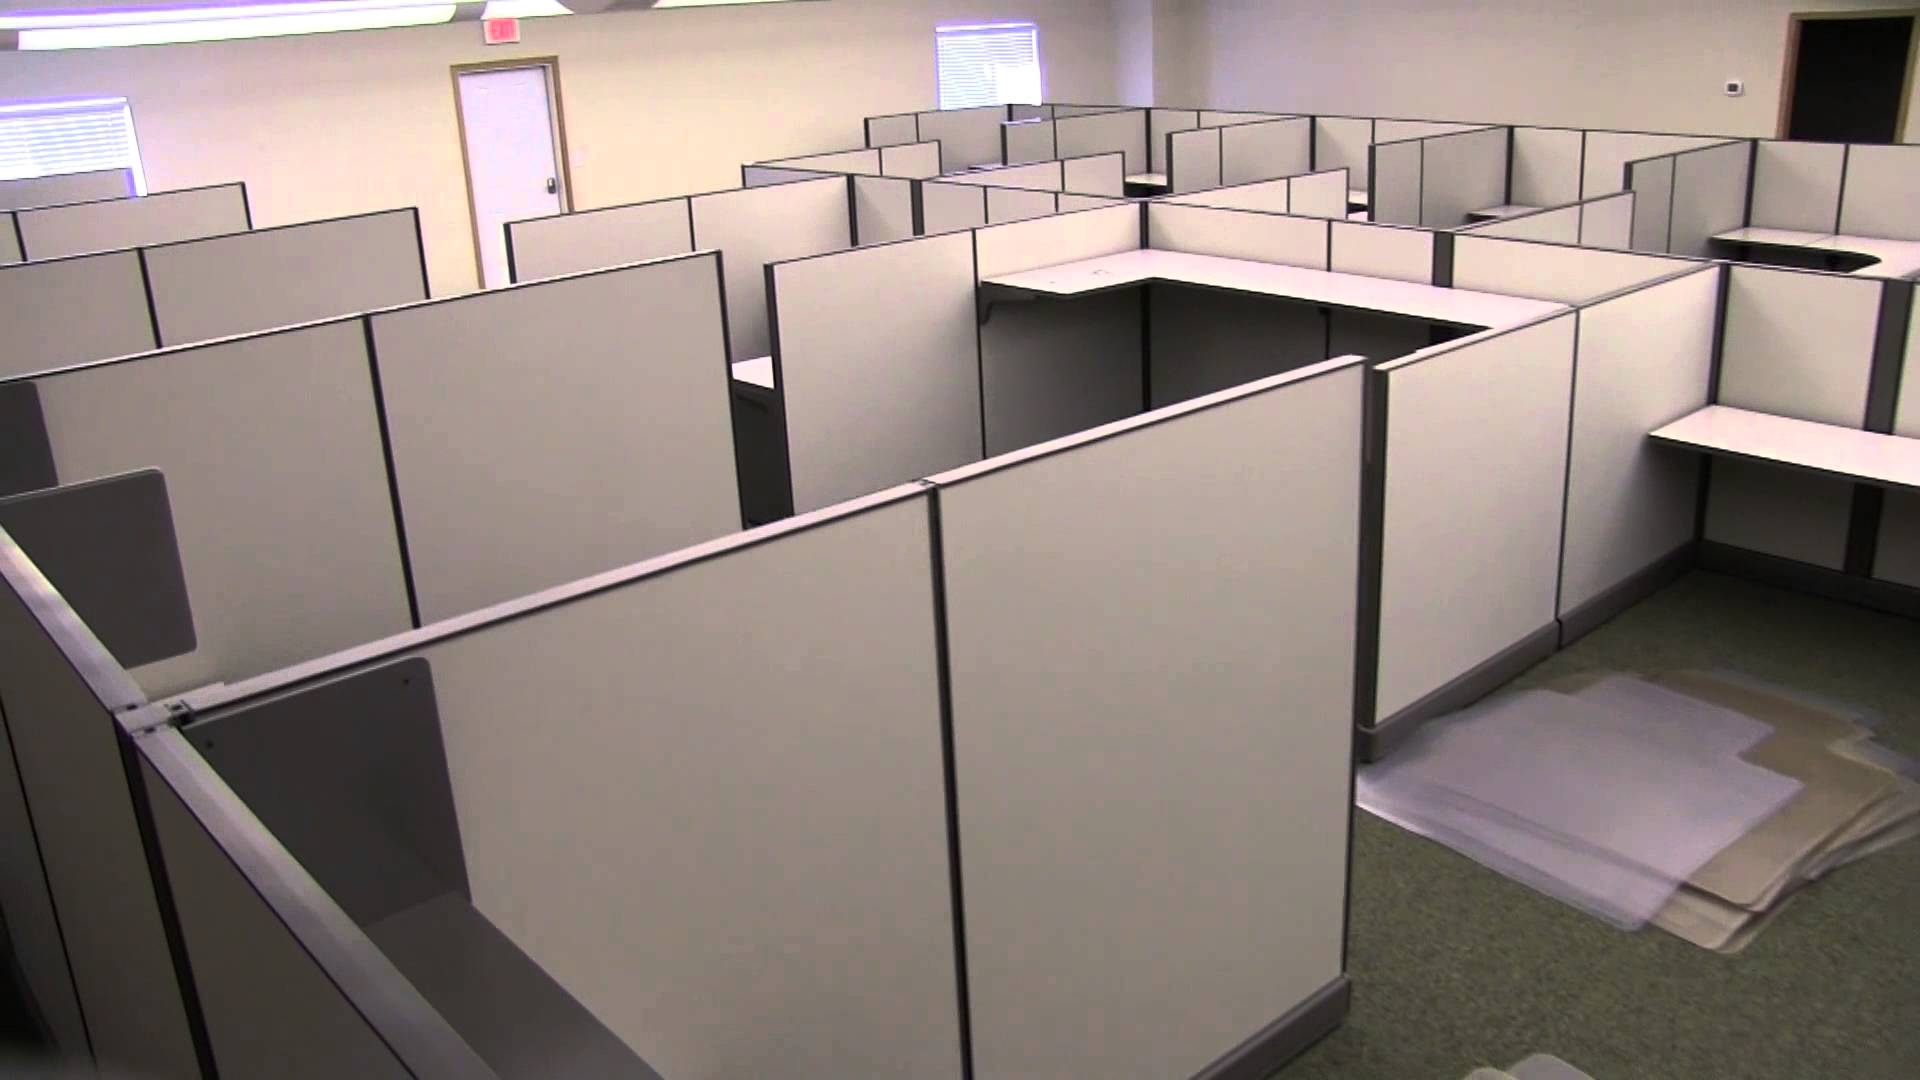 Cubicle Wallpaper HD Wallpapercraft 1920x1080